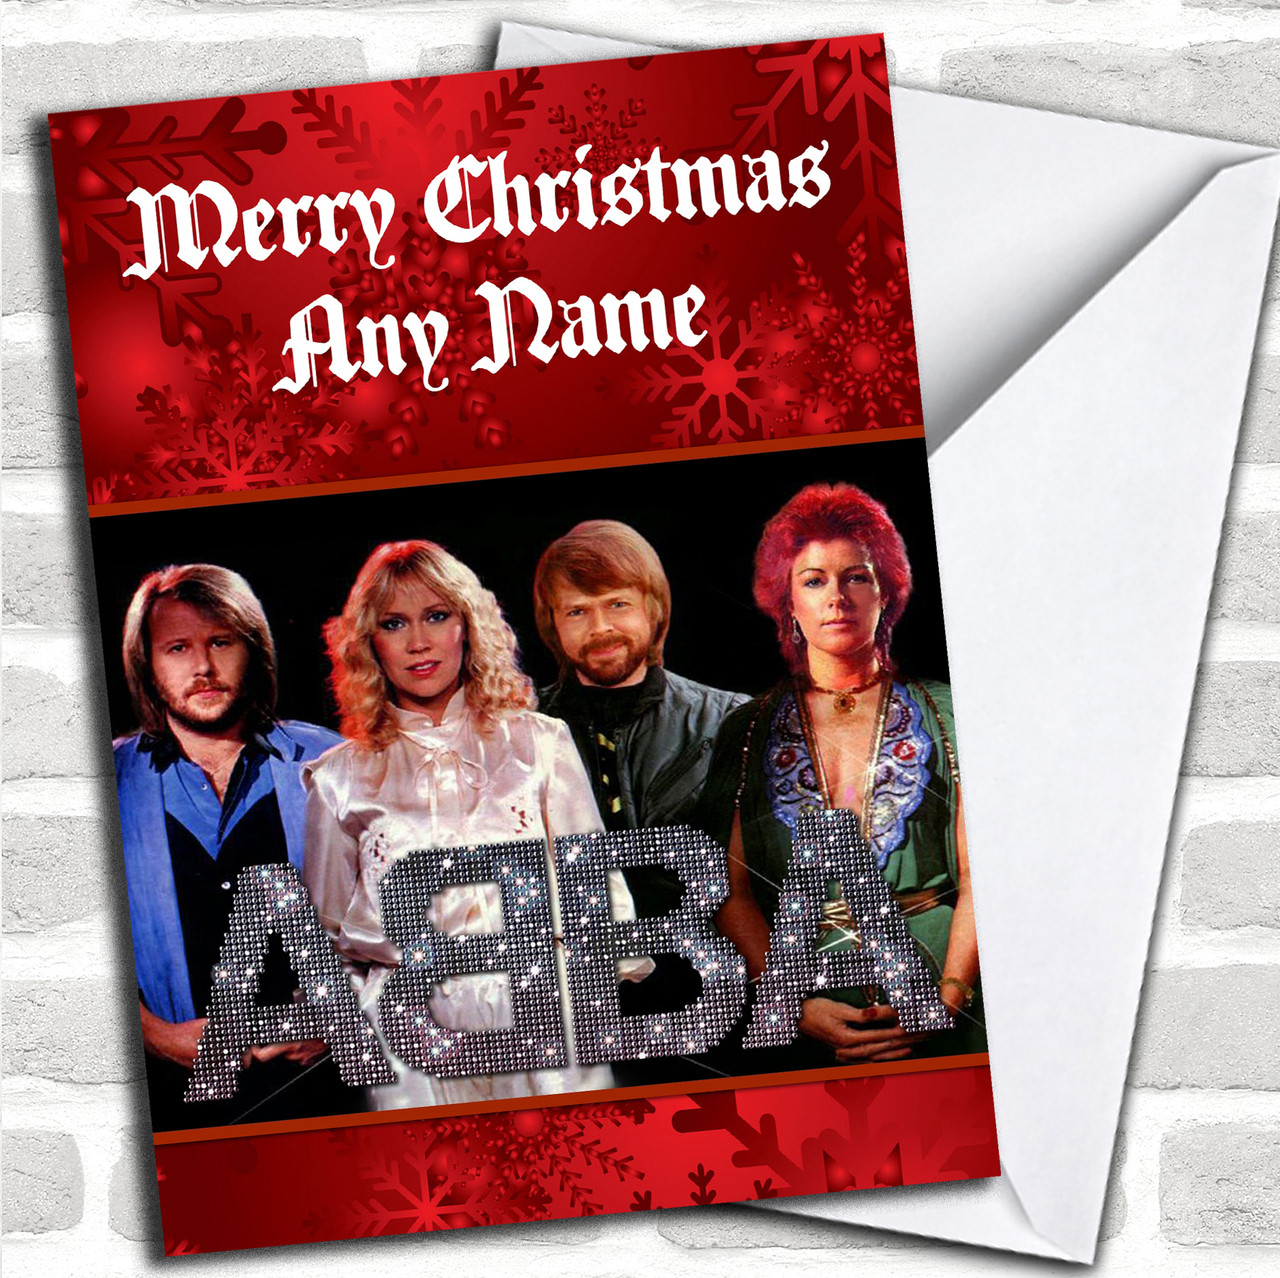 Abba Personalized Christmas Card - Red Heart Print